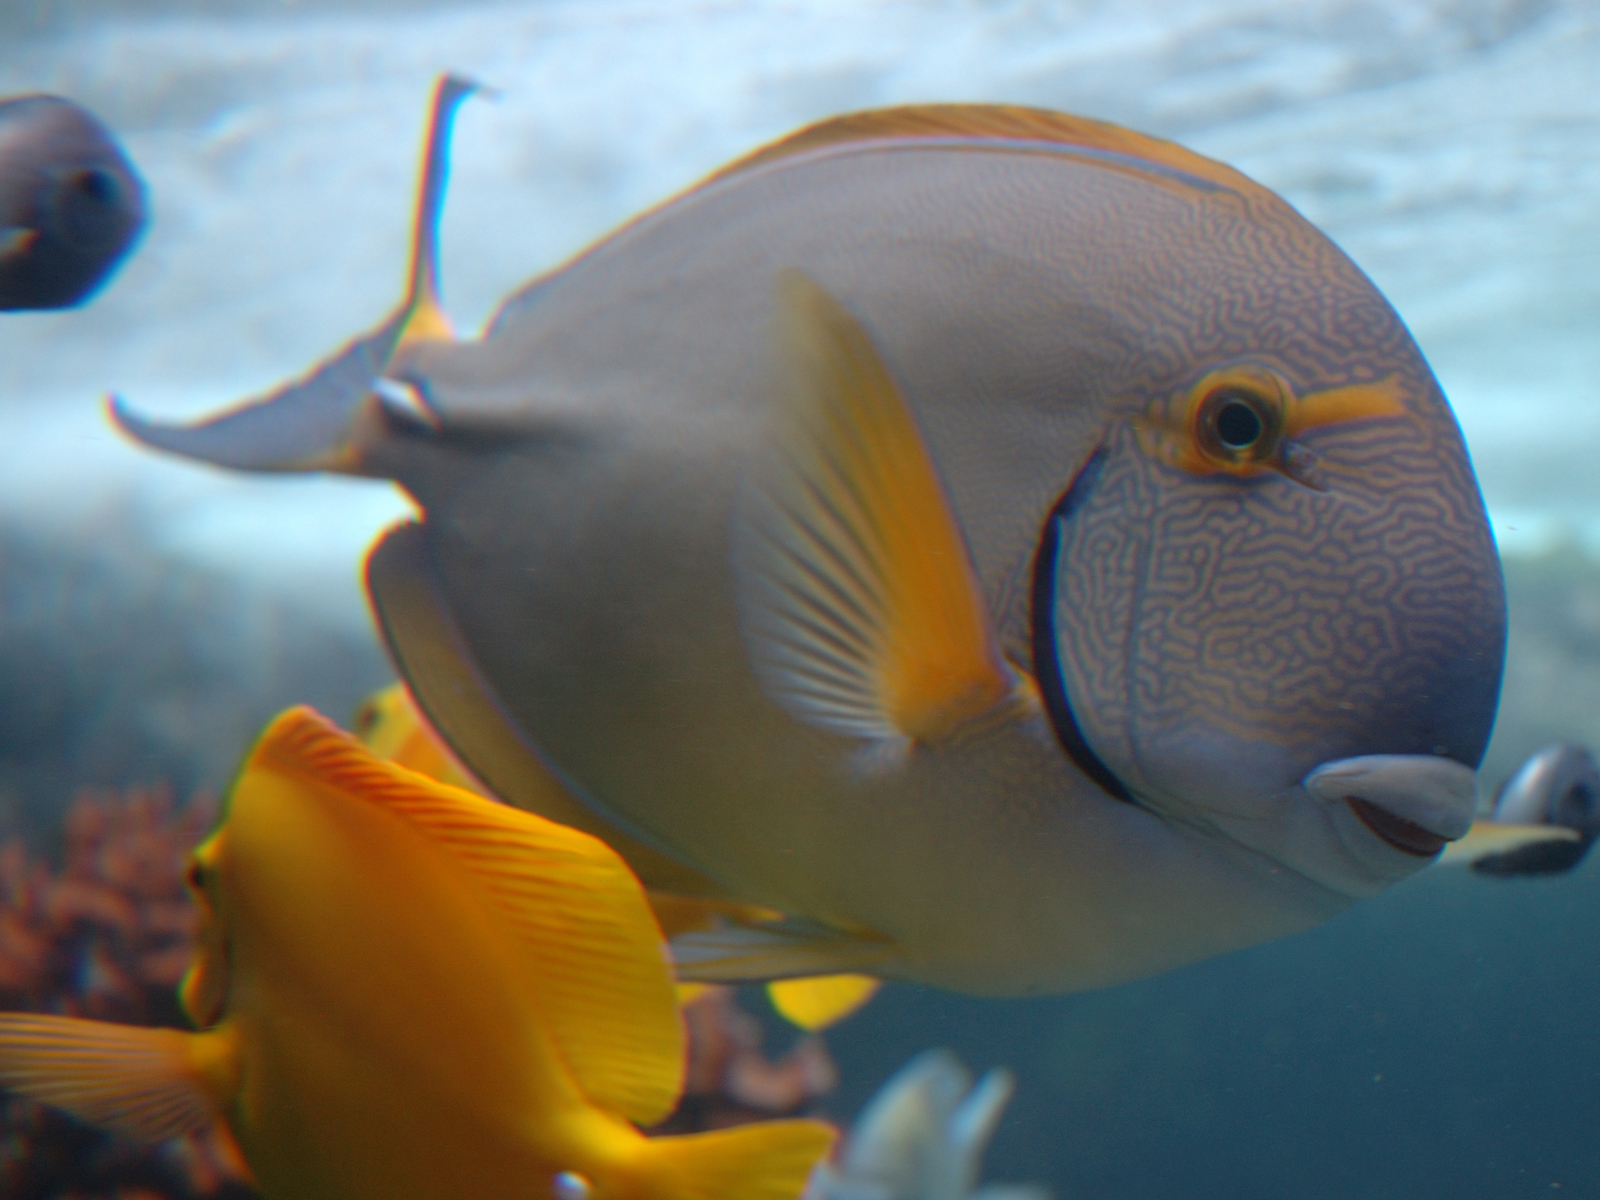 Fish Wallpapers,Fish Pictures,Fish Photos: Fish wallpapers